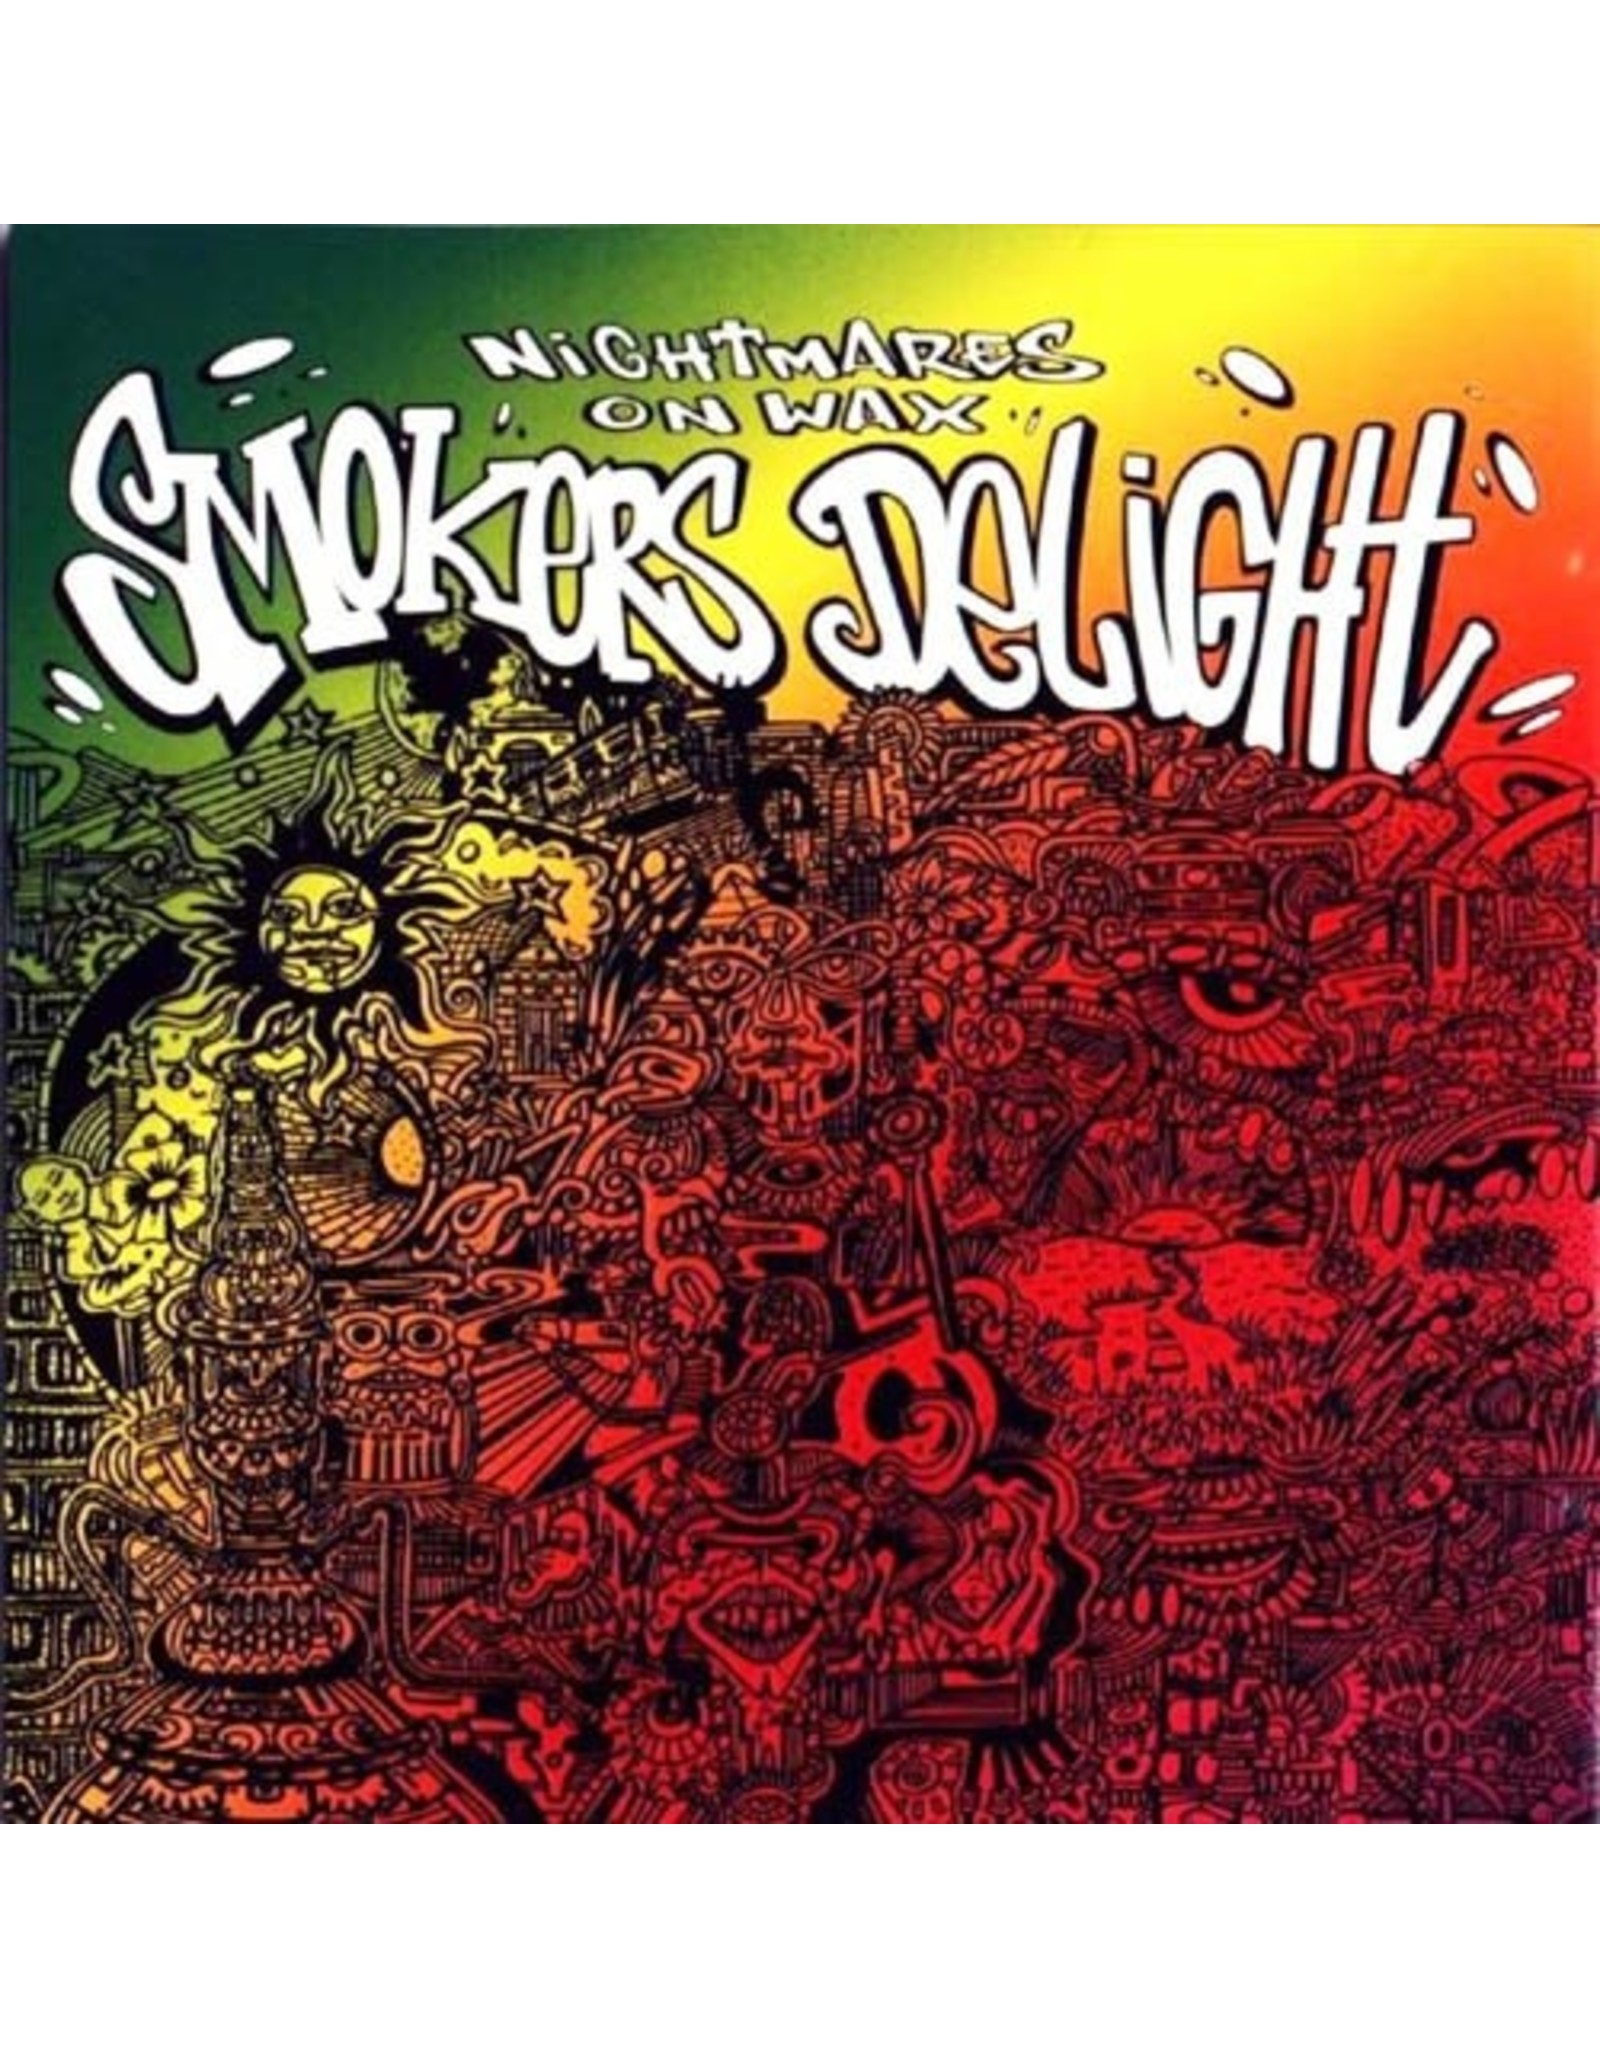 New Vinyl Nightmares On Wax - Smoker's Delight 2LP